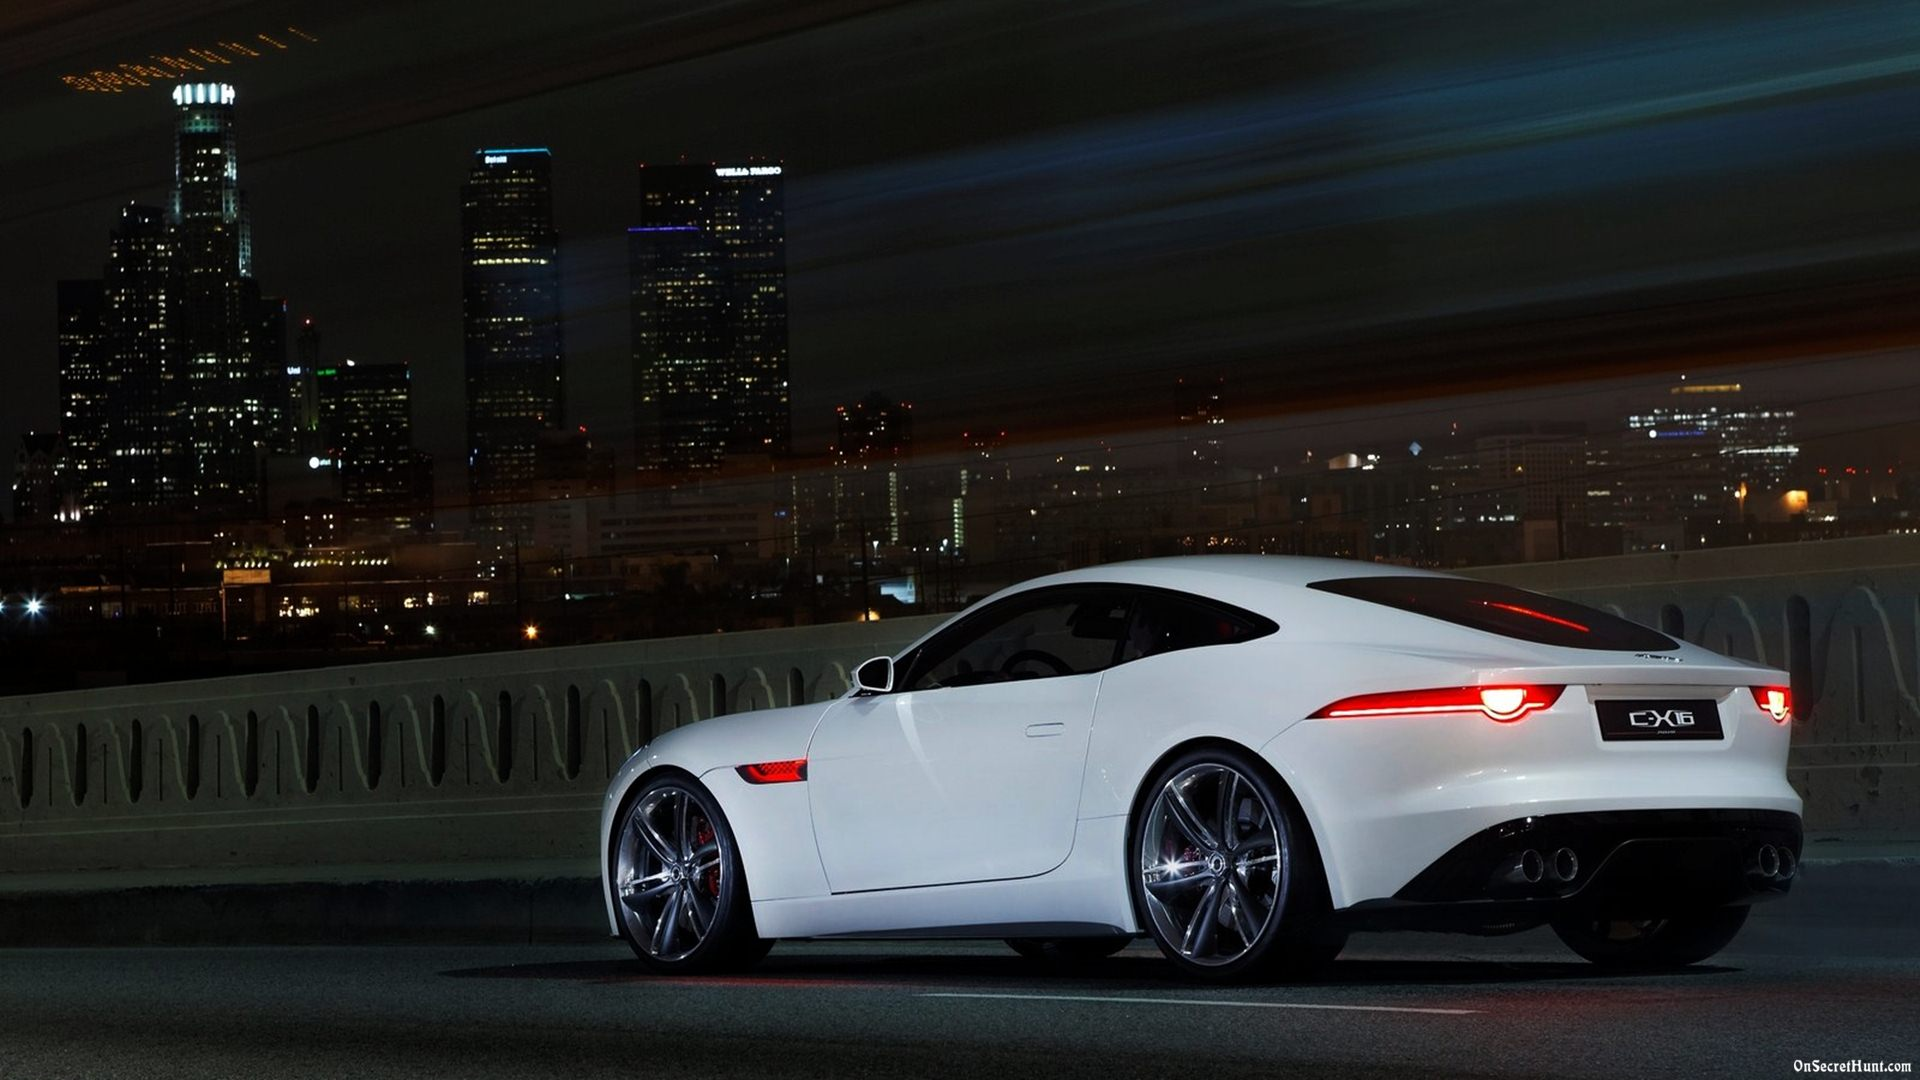 Free Download Jaguar F Type Wallpaper 1920x1080 4110 1920x1080